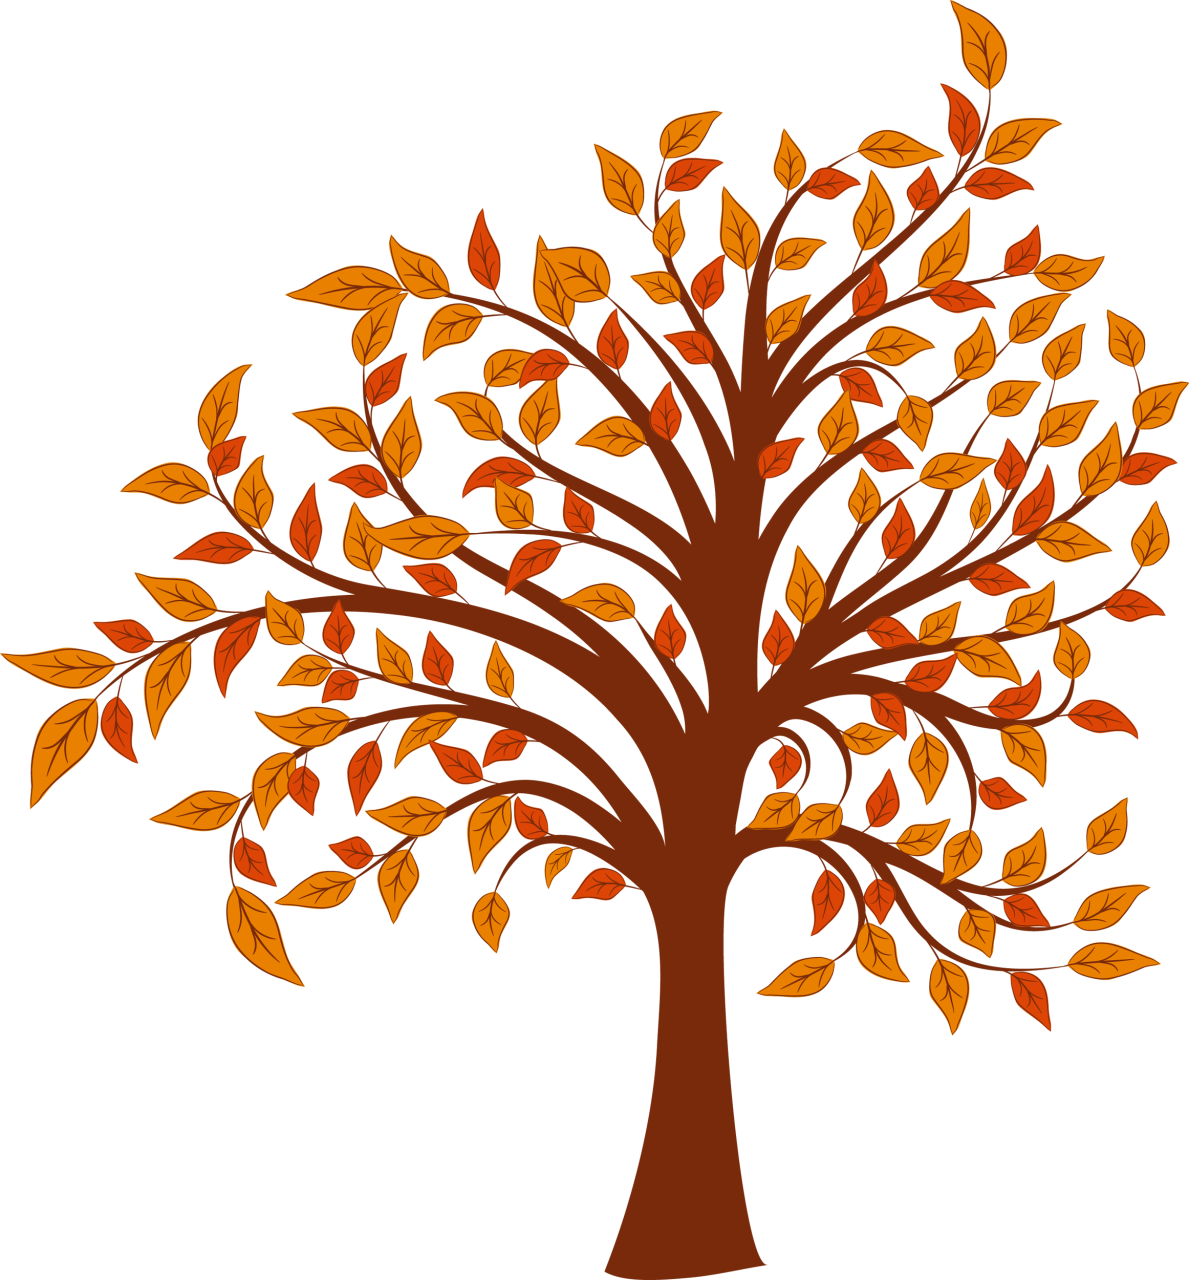 Fall tree clipart free png royalty free Autumn tree clipart free - ClipartFest png royalty free